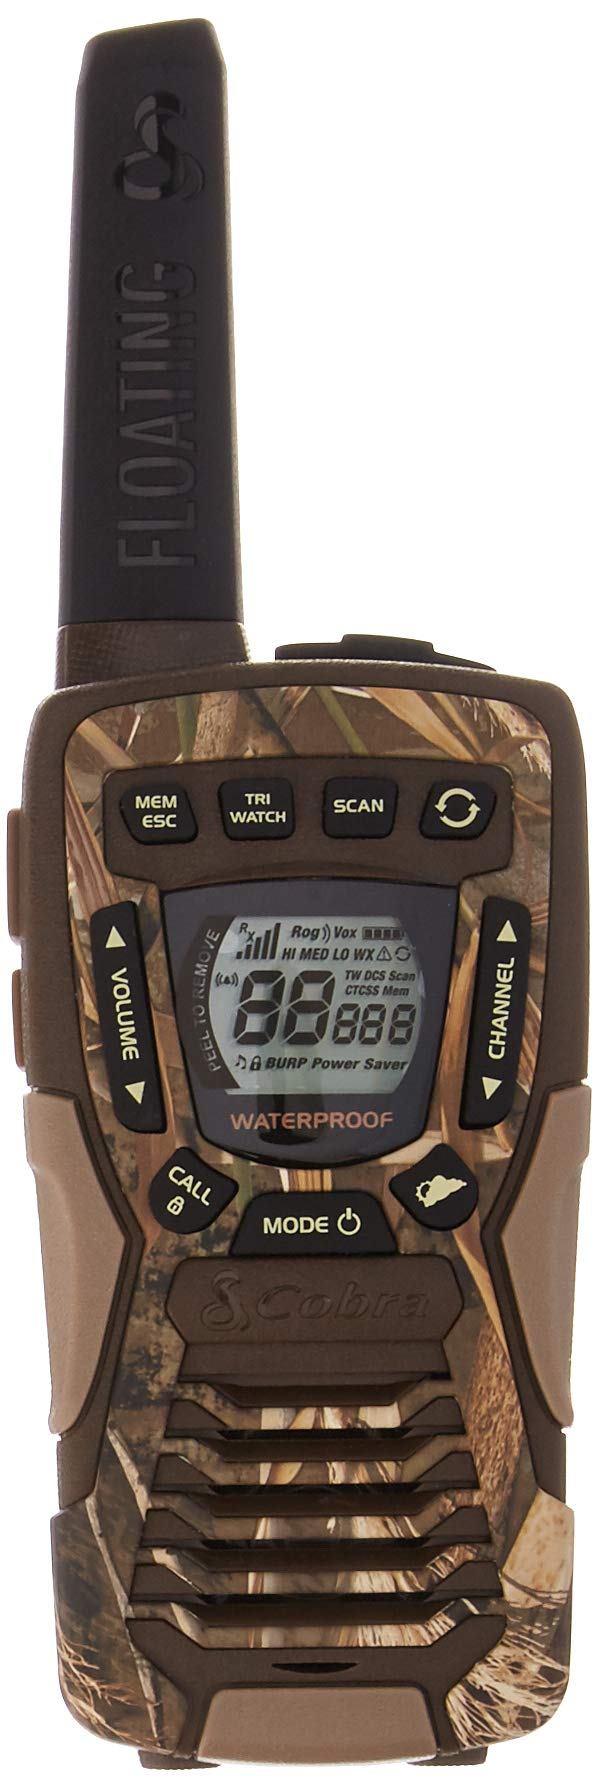 Cobra ACXT1035R FLT CAMO Walkie Talkies 37-Mile Two-Way Radios with Rewind-Say-Again (Pair) by Cobra (Image #1)